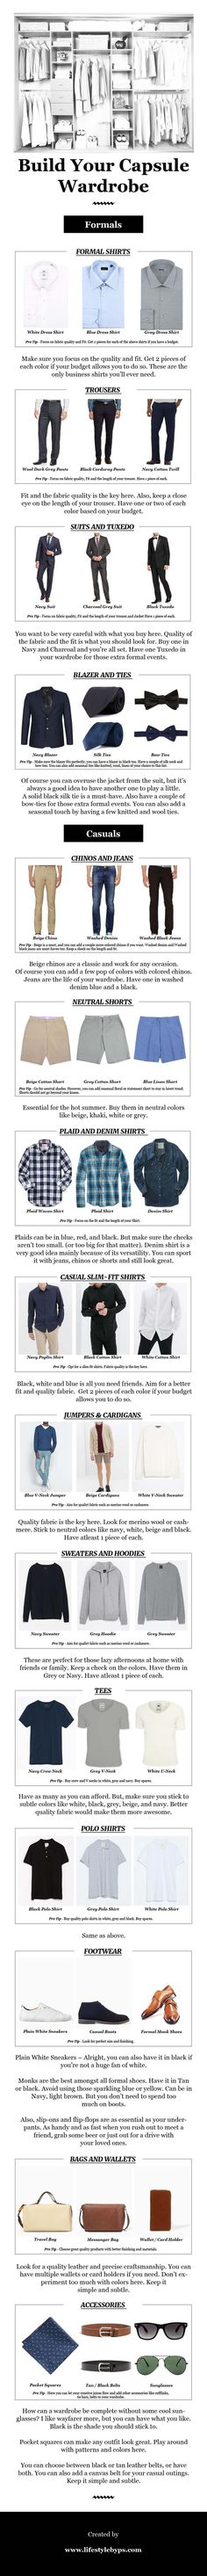 Build Your Capsule Wardrobe From The Ground Up - Infographic